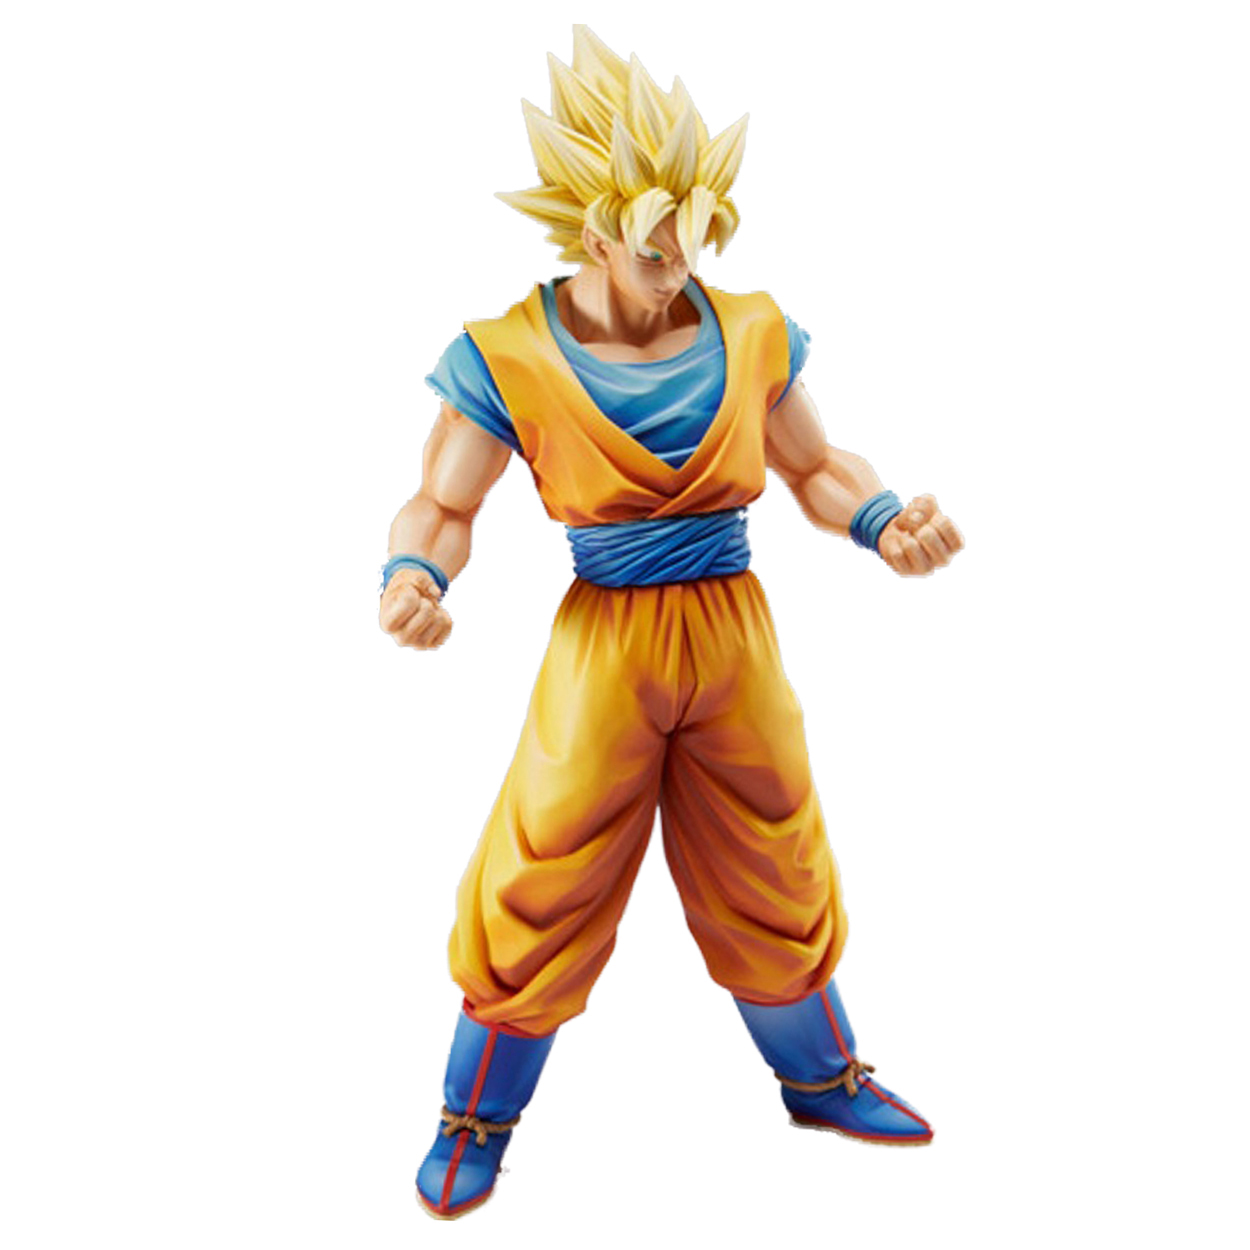 Chanycore 23CM Anime Action Figure Black MSP BIG SIZE Son Goku Dragon Ball Z Figurines Fashion Cool Boy PVC Action Figure anime dragon ball super saiyan 3 son gokou pvc action figure collectible model toy 18cm kt2841